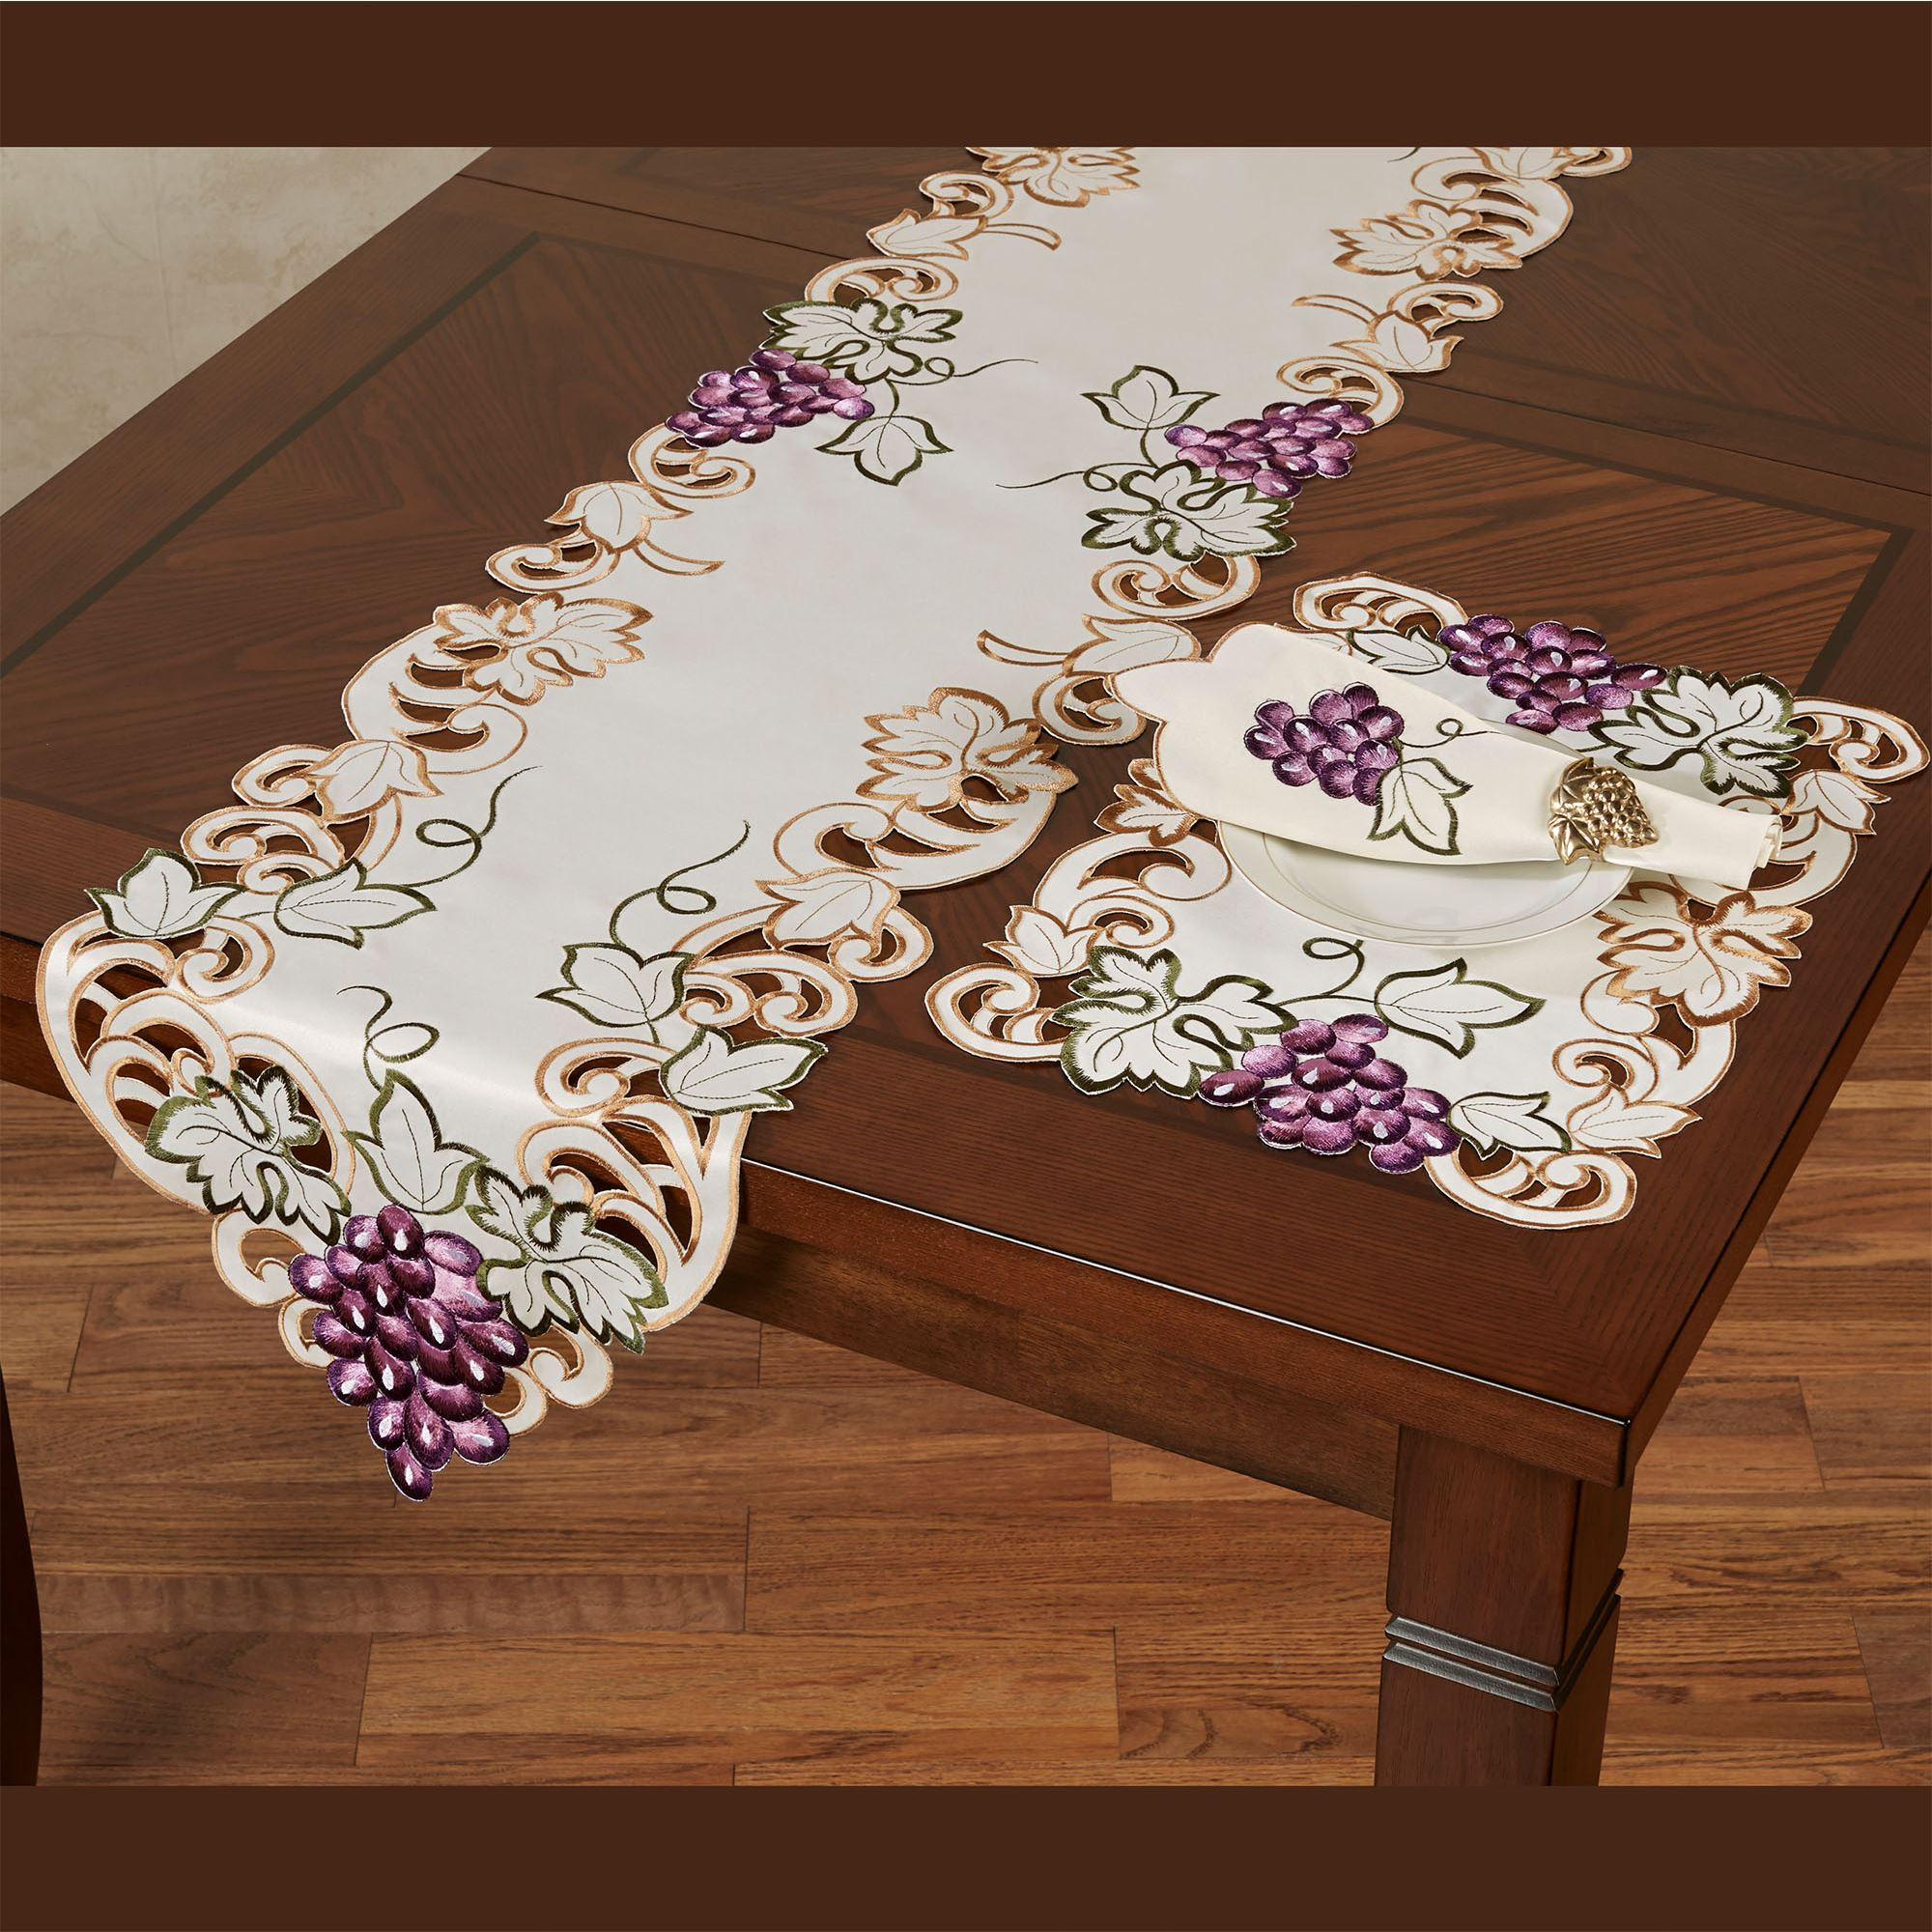 Cabernet Grape Themed Embroidered Table Runner And Table